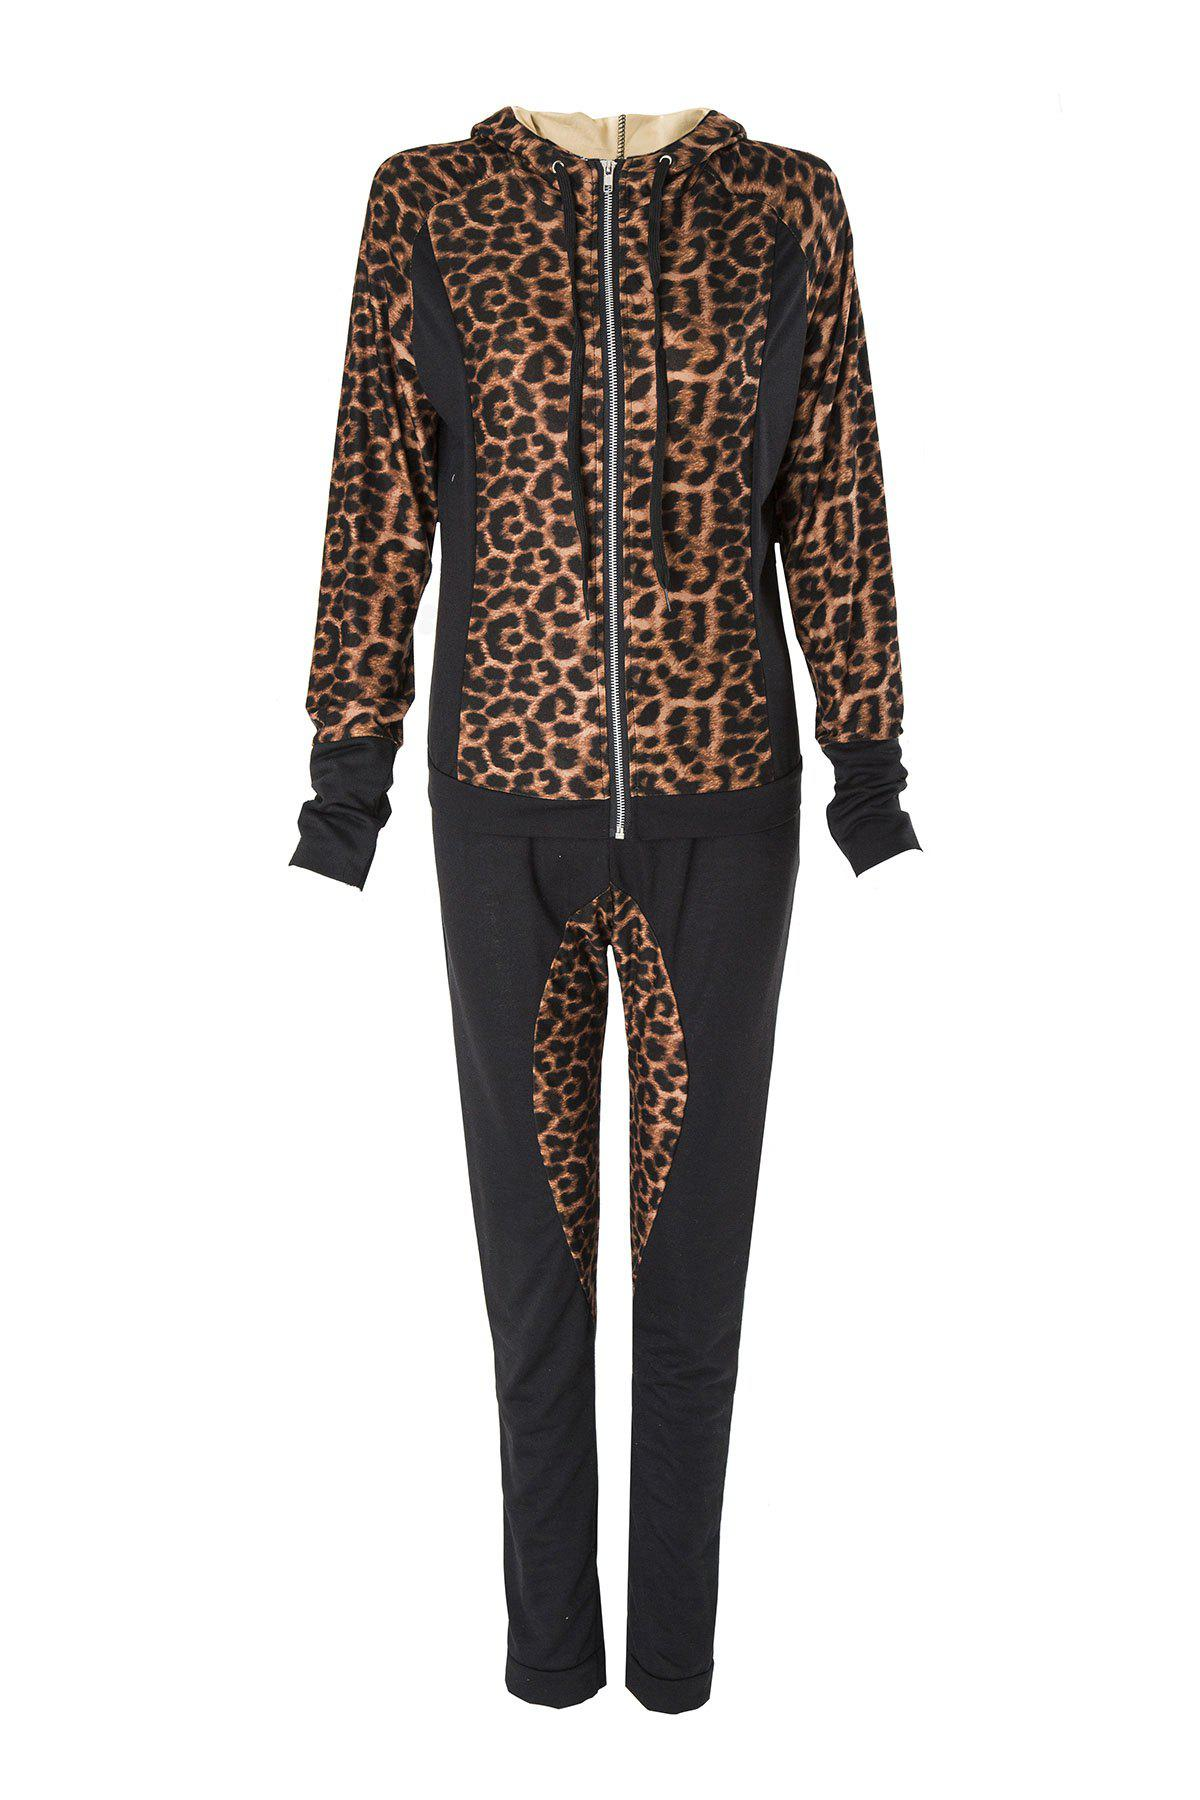 Stylish Long Sleeve Hooded Leopard Print Hoodie + Drawstring Pants Women's Twinset - BLACK XL